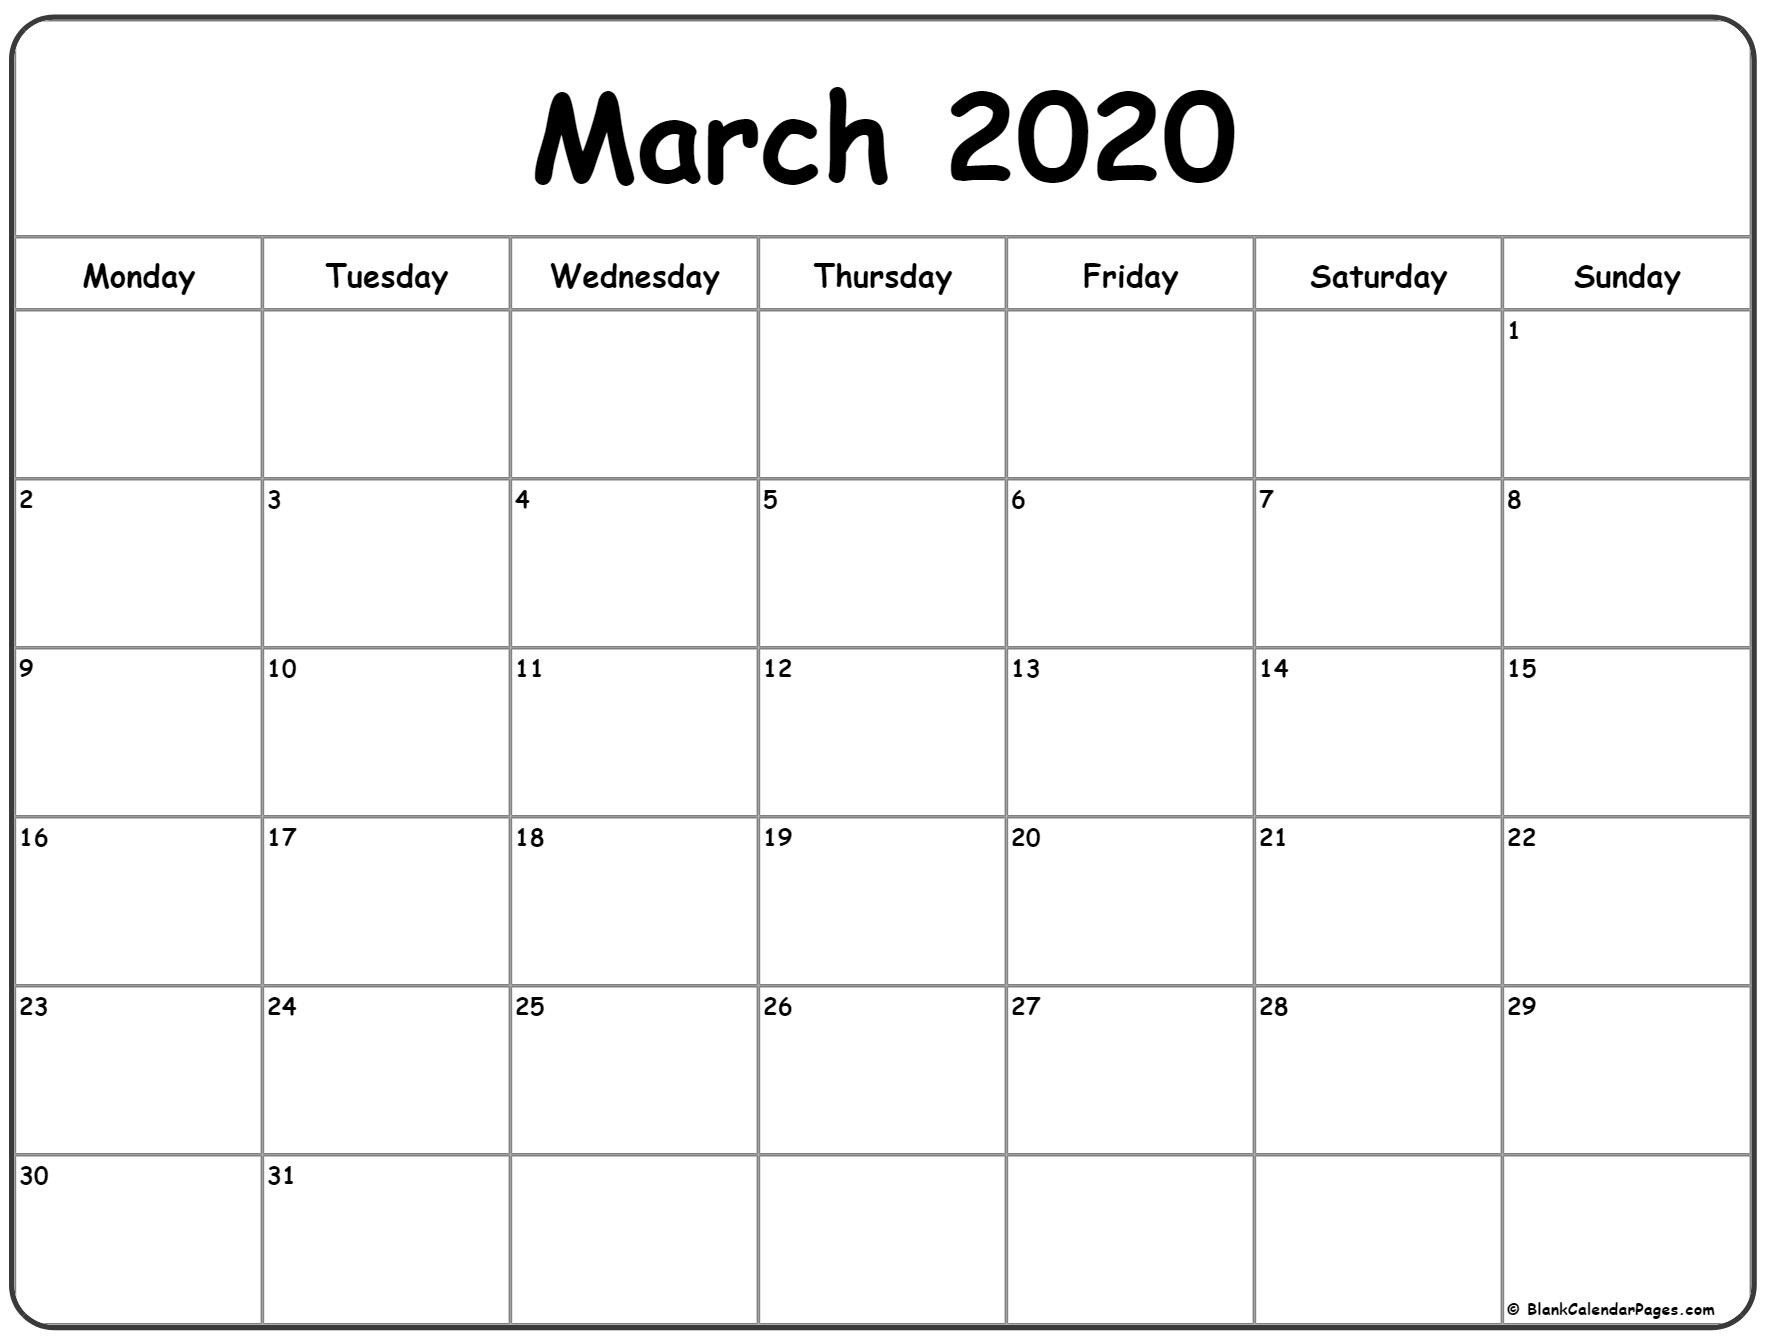 March 2020 Monday Calendar | Monday To Sunday-Monthly Calendar Template 2020 Printable Blank Starting Monday